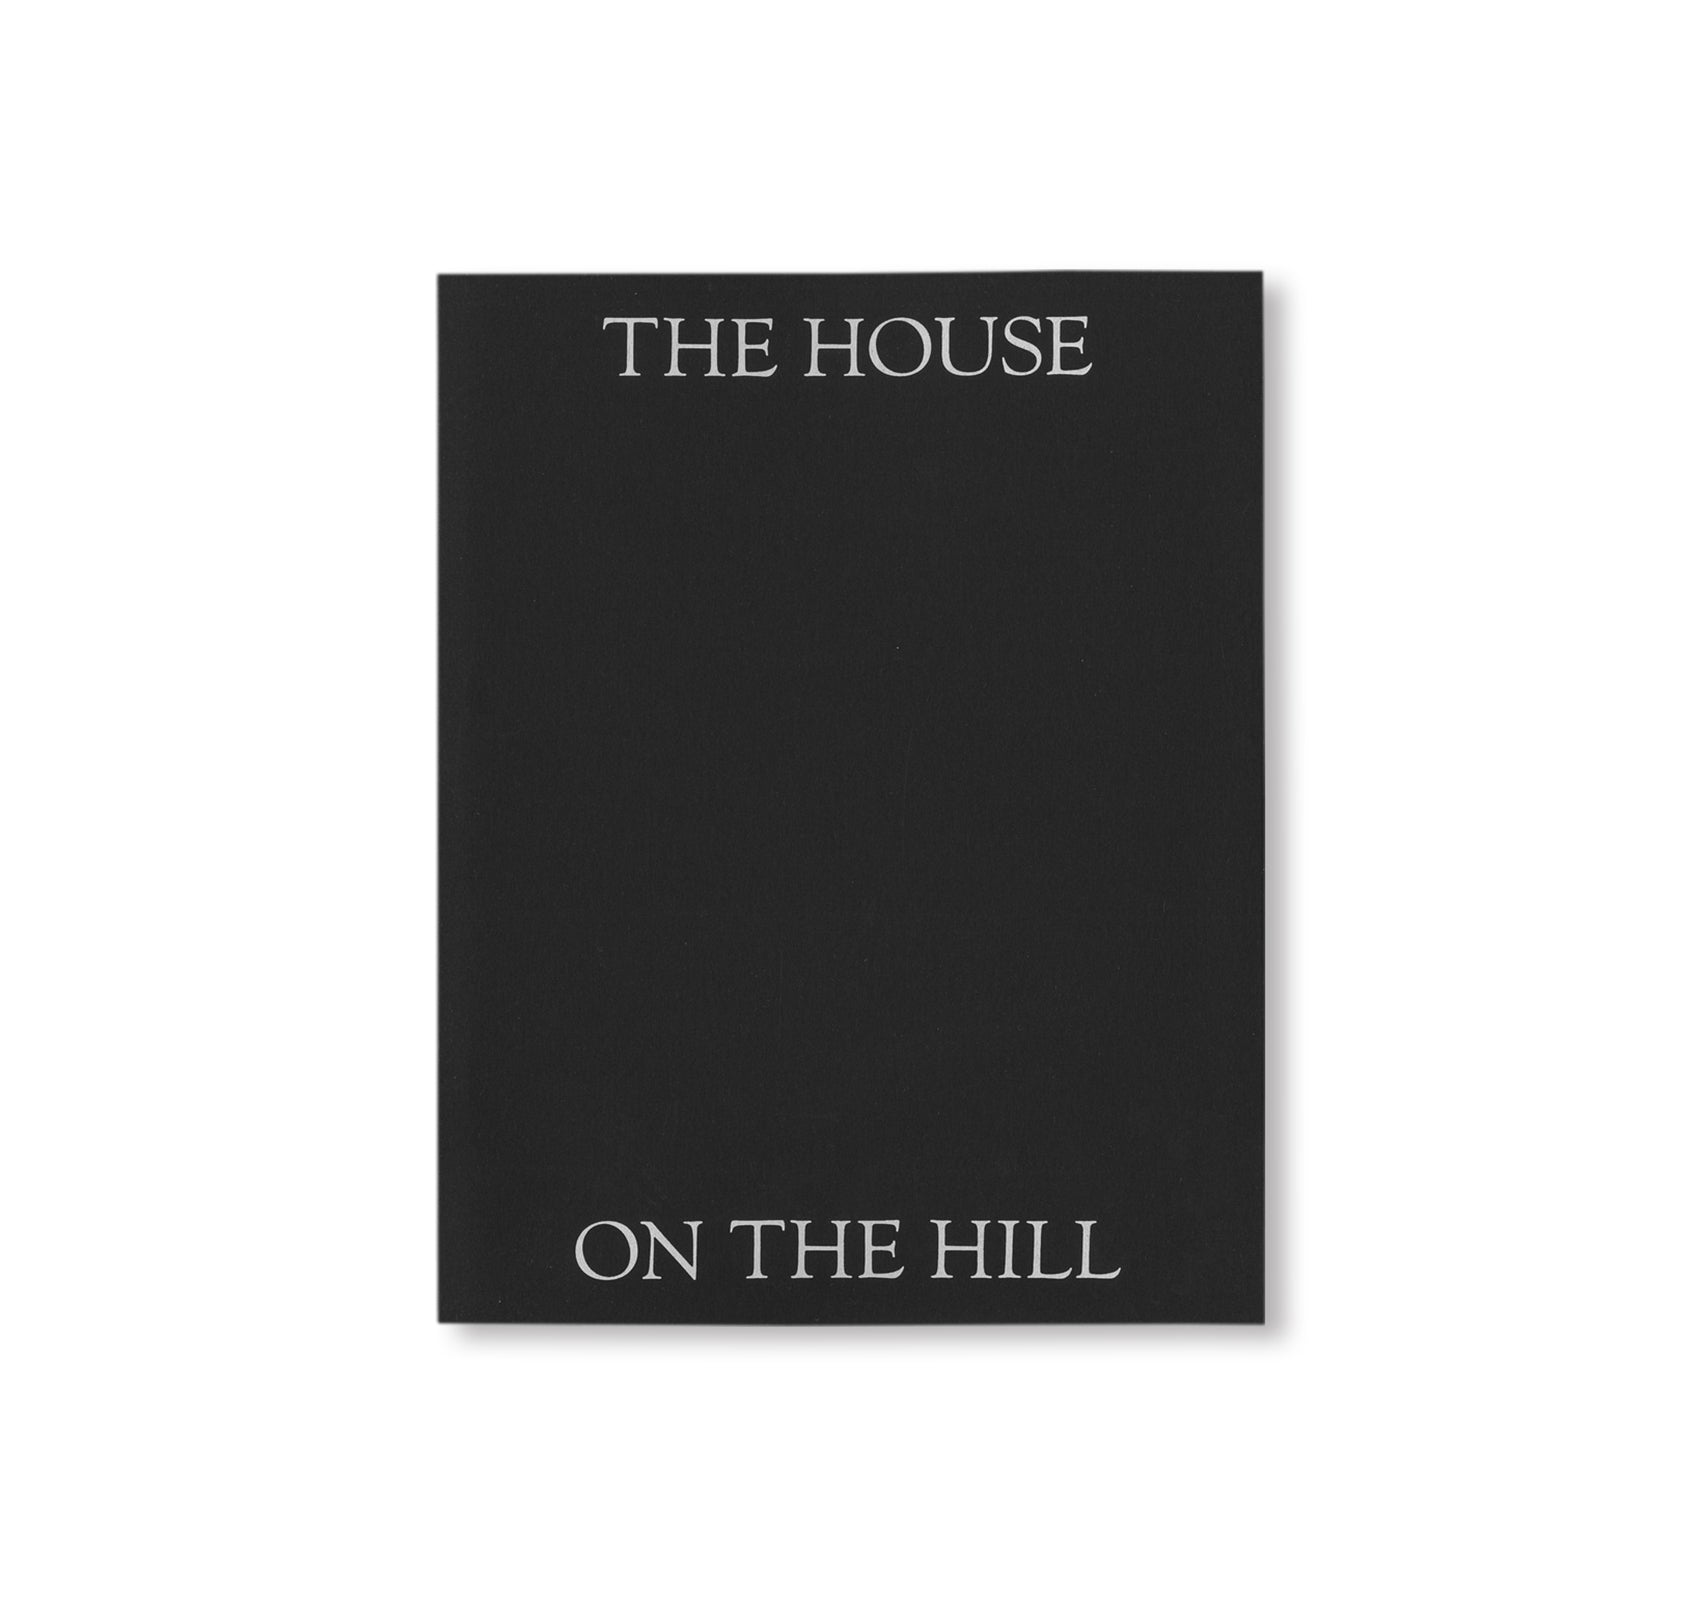 THE HOUSE ON THE HILL by Jørn Aagaard